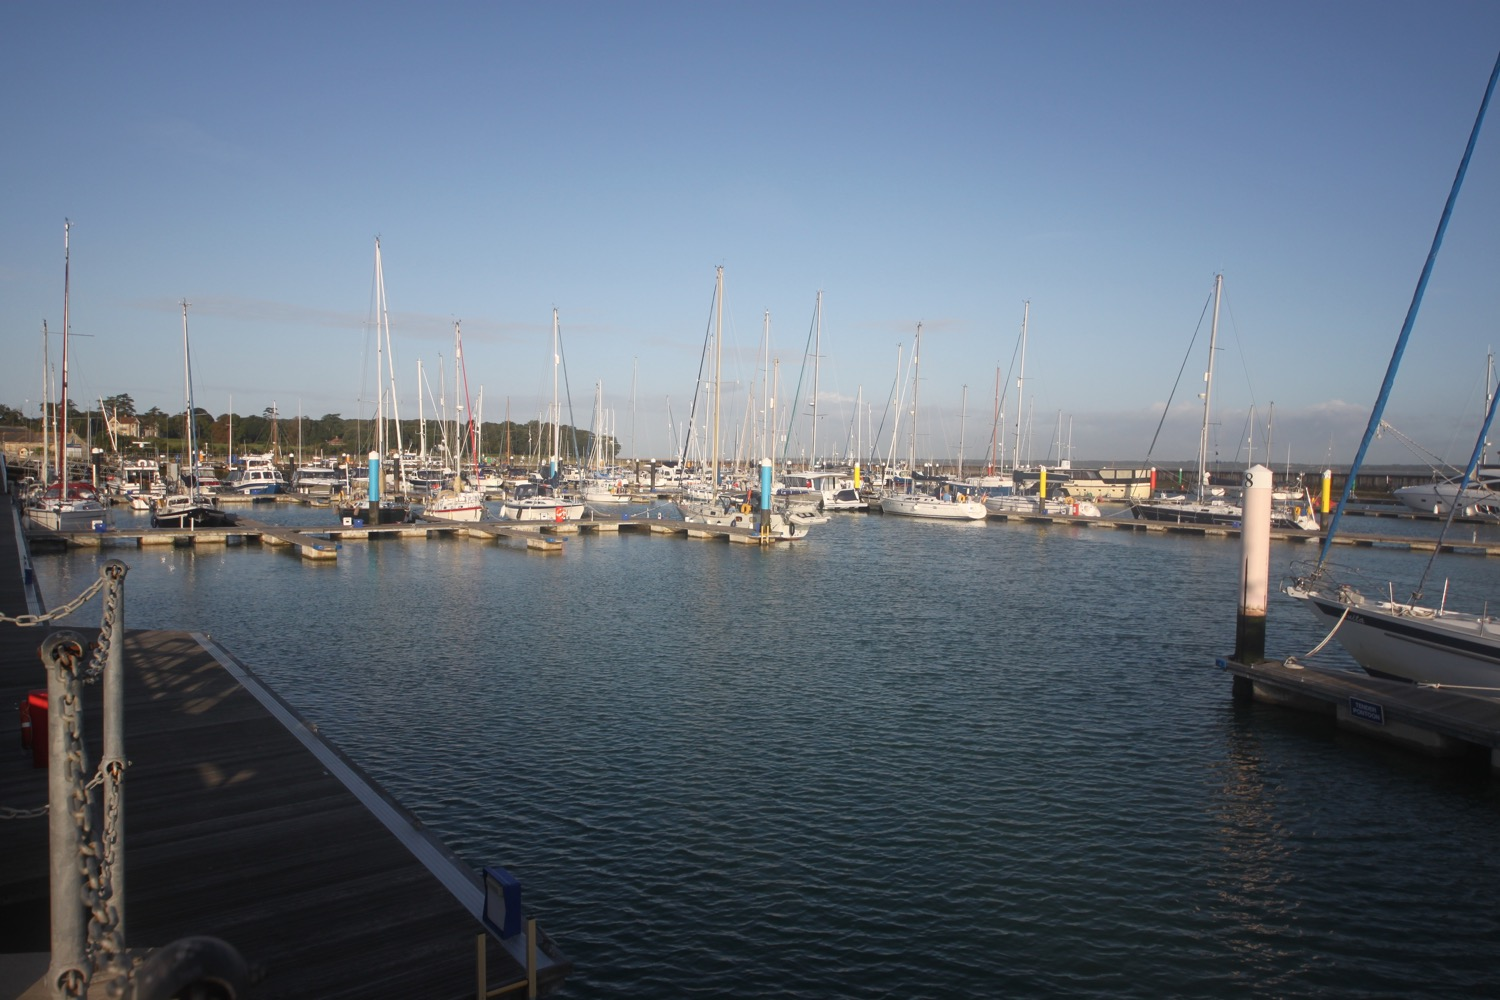 yarmouth harbour 3.jpg